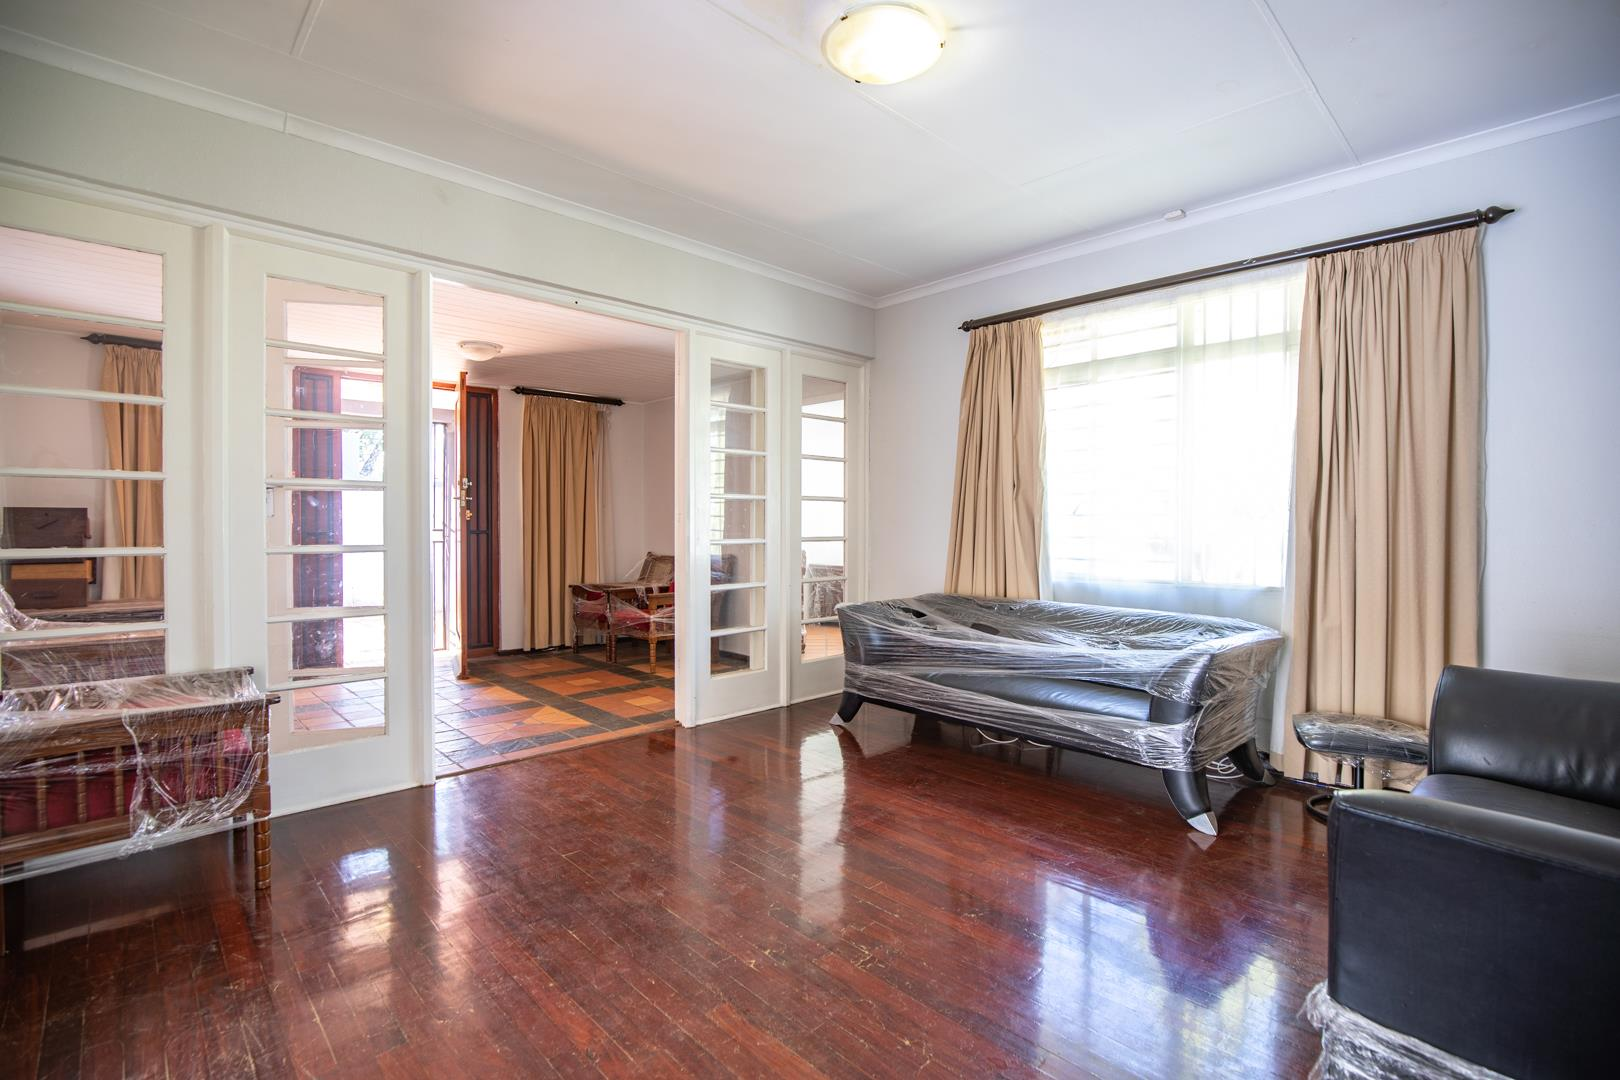 4 Bedroom House For Sale in Brooklyn